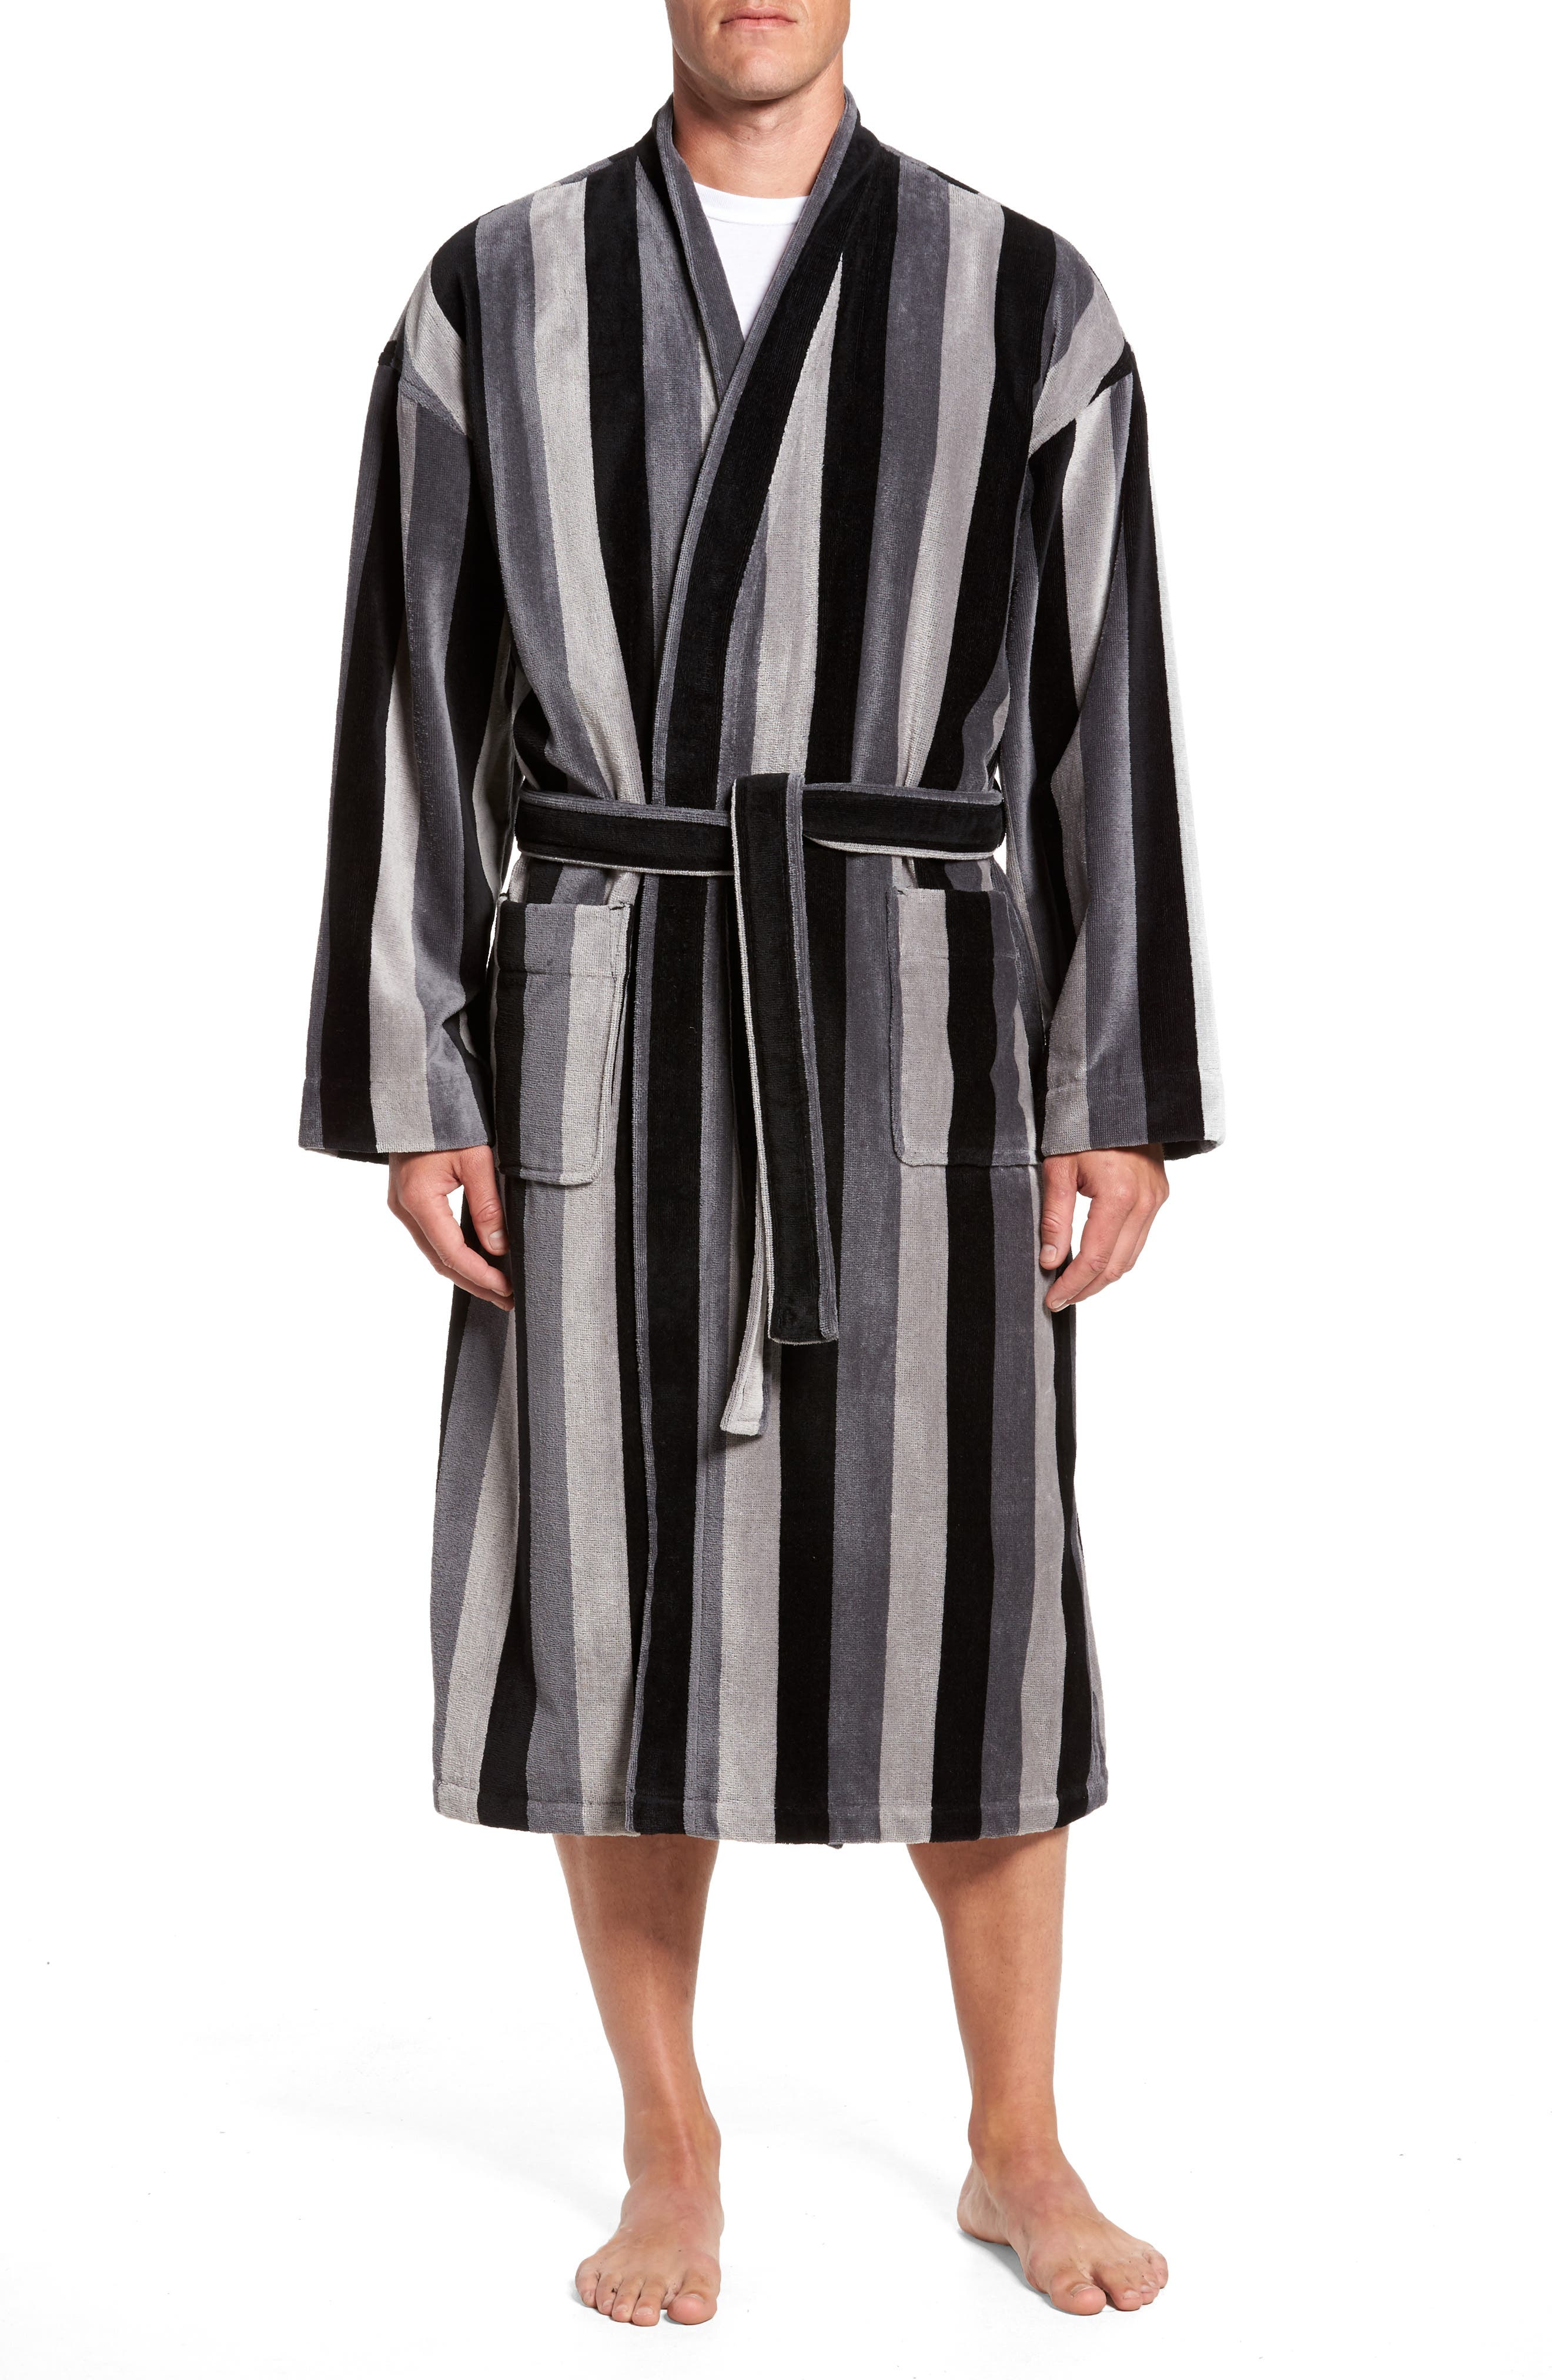 Remarkavelour Robe,                         Main,                         color, 001